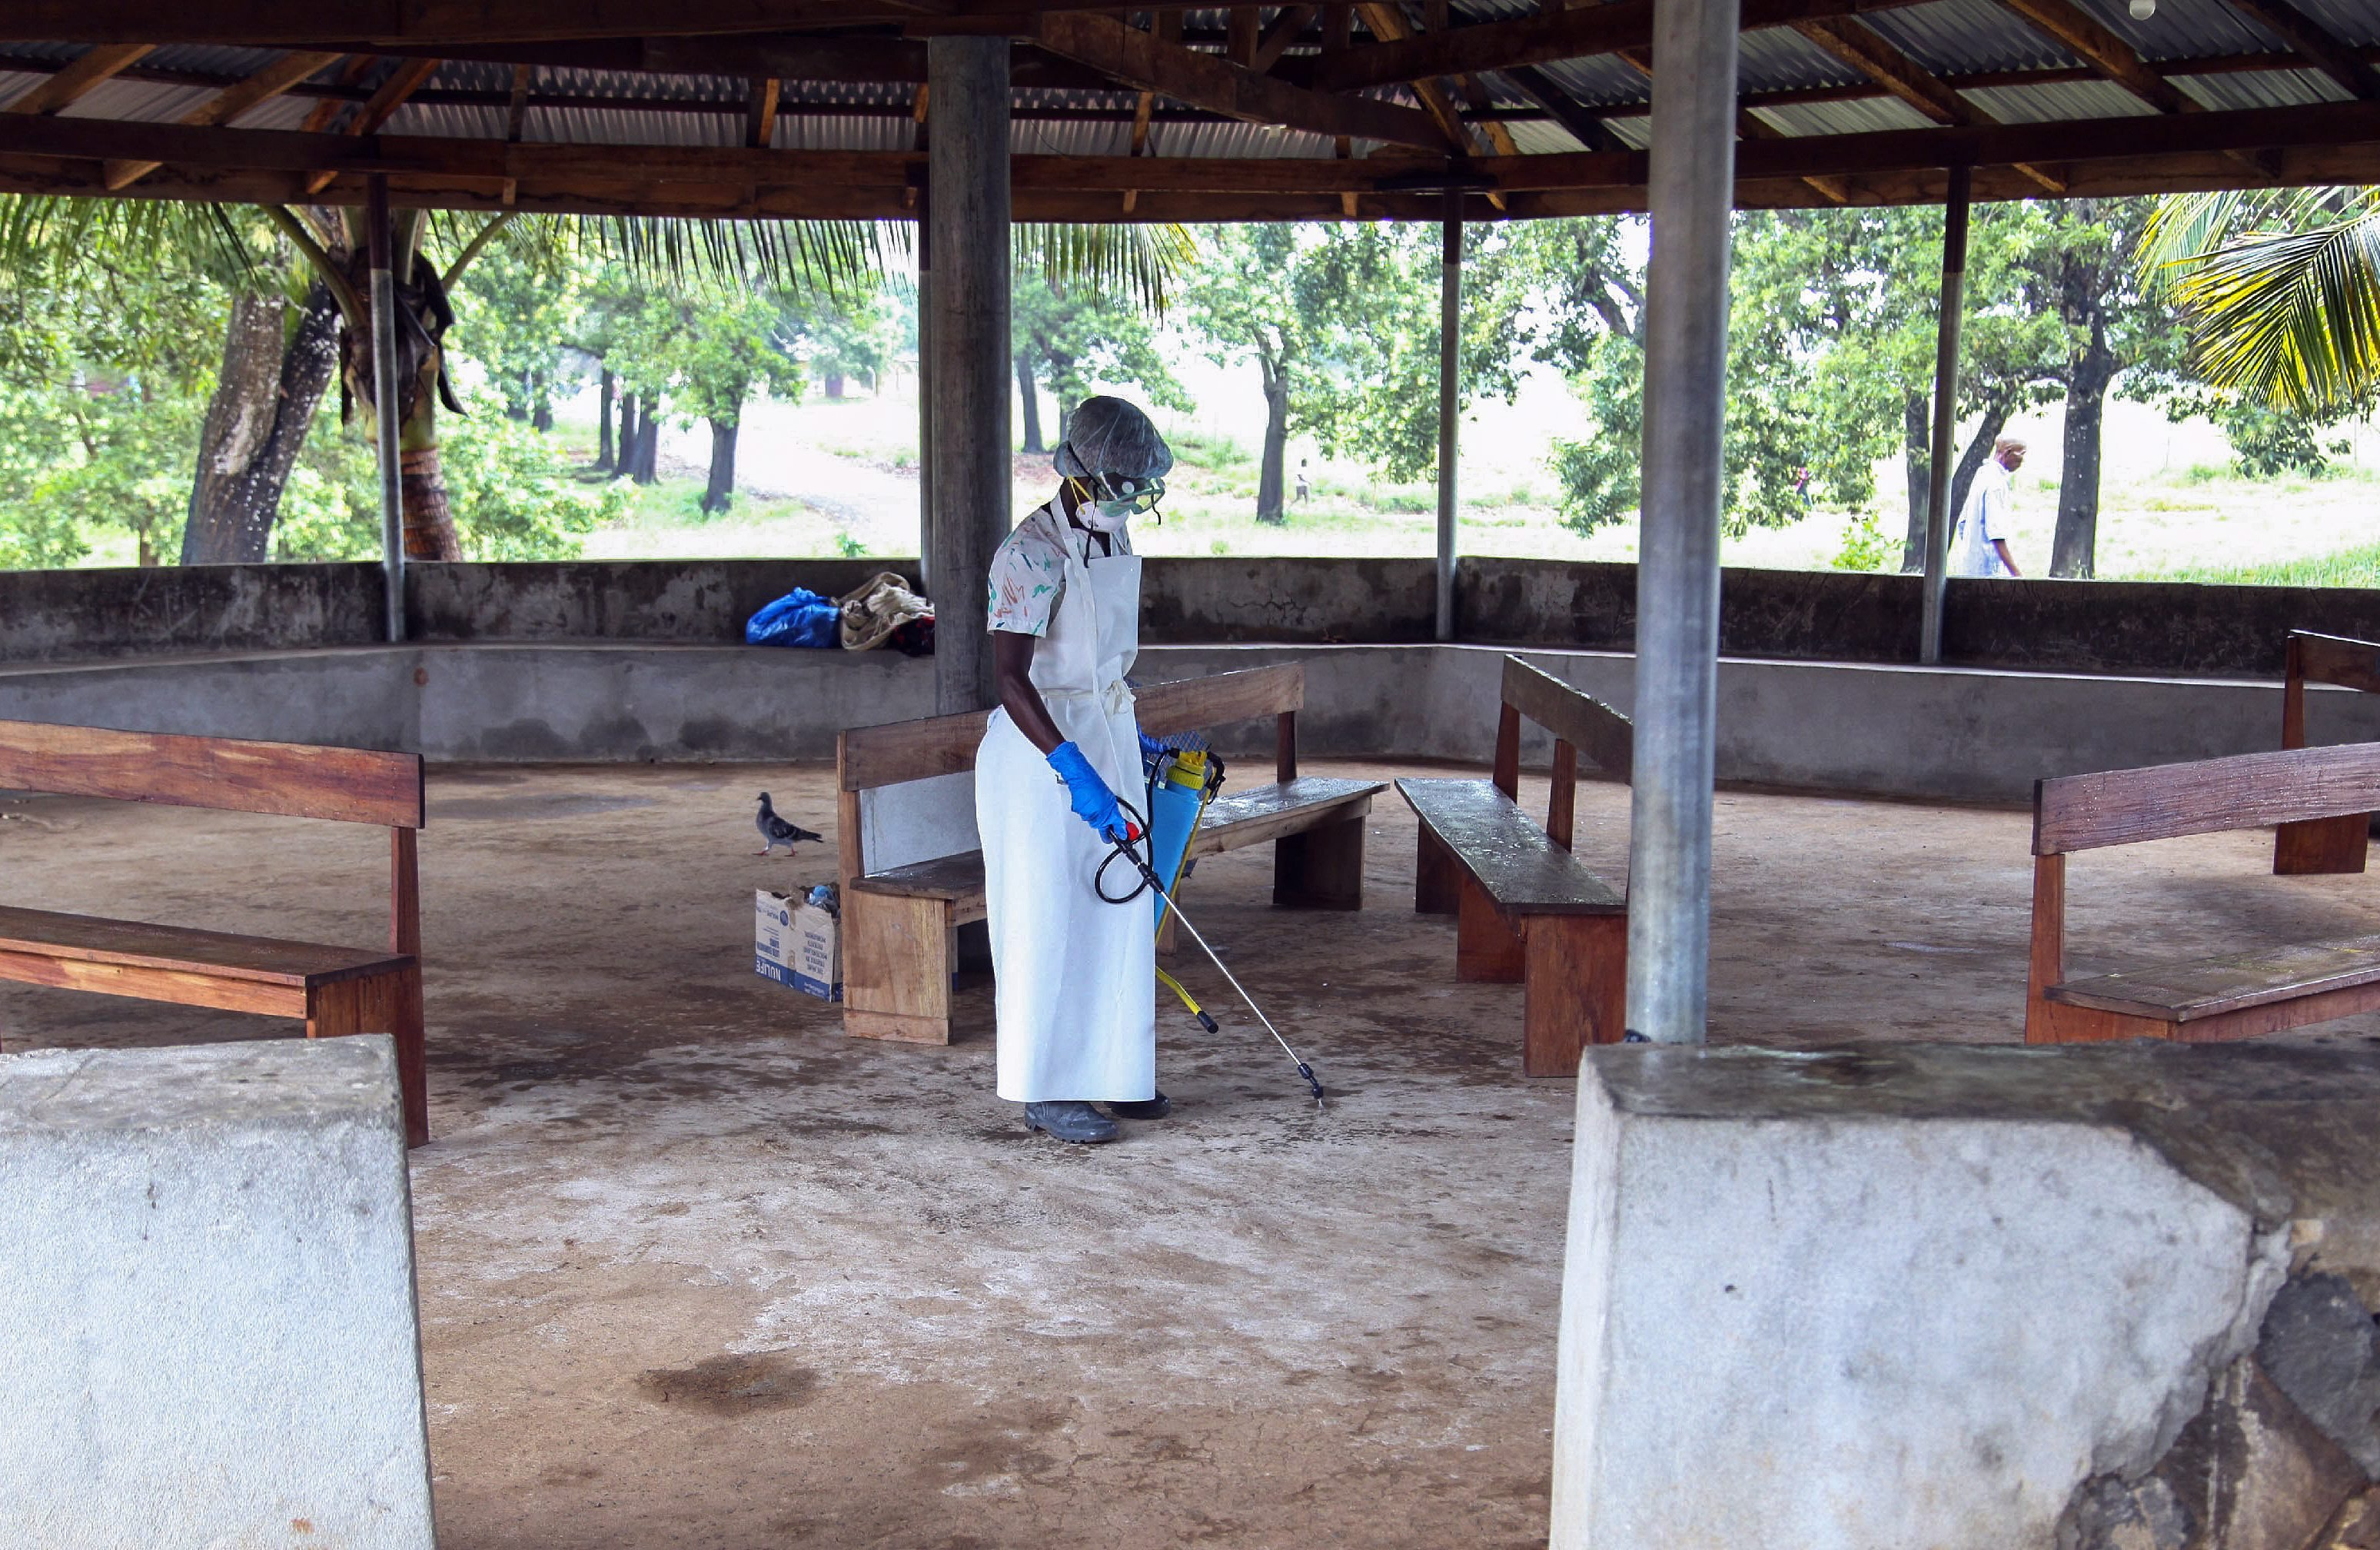 A nurse from Liberia sprays preventives to disinfect the waiting area for visitors at the ELWA Hospital where a US doctor Kent Bradley is being quarantined in the hospitals isolation unit having contracted the Ebola virus, Monrovia, Liberia, 28 July 2014.